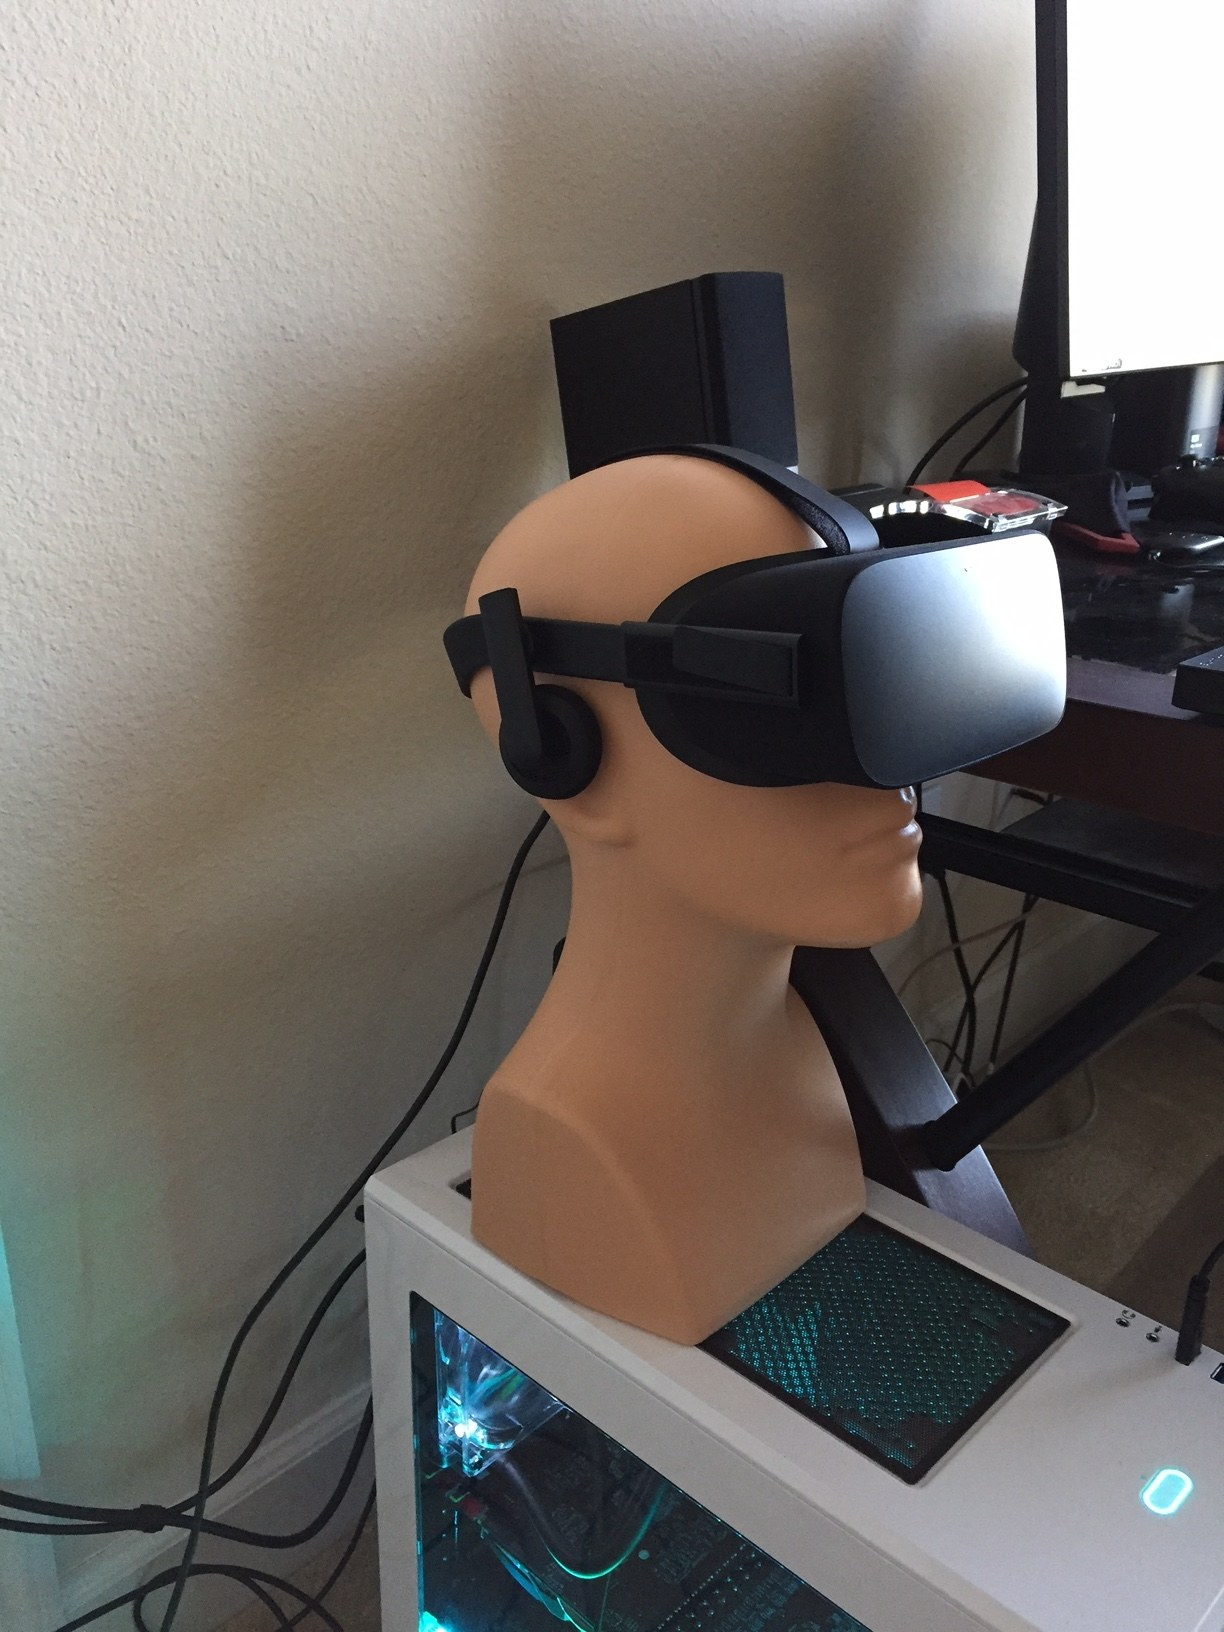 How to Store Oculus Rift and Oculus Touch